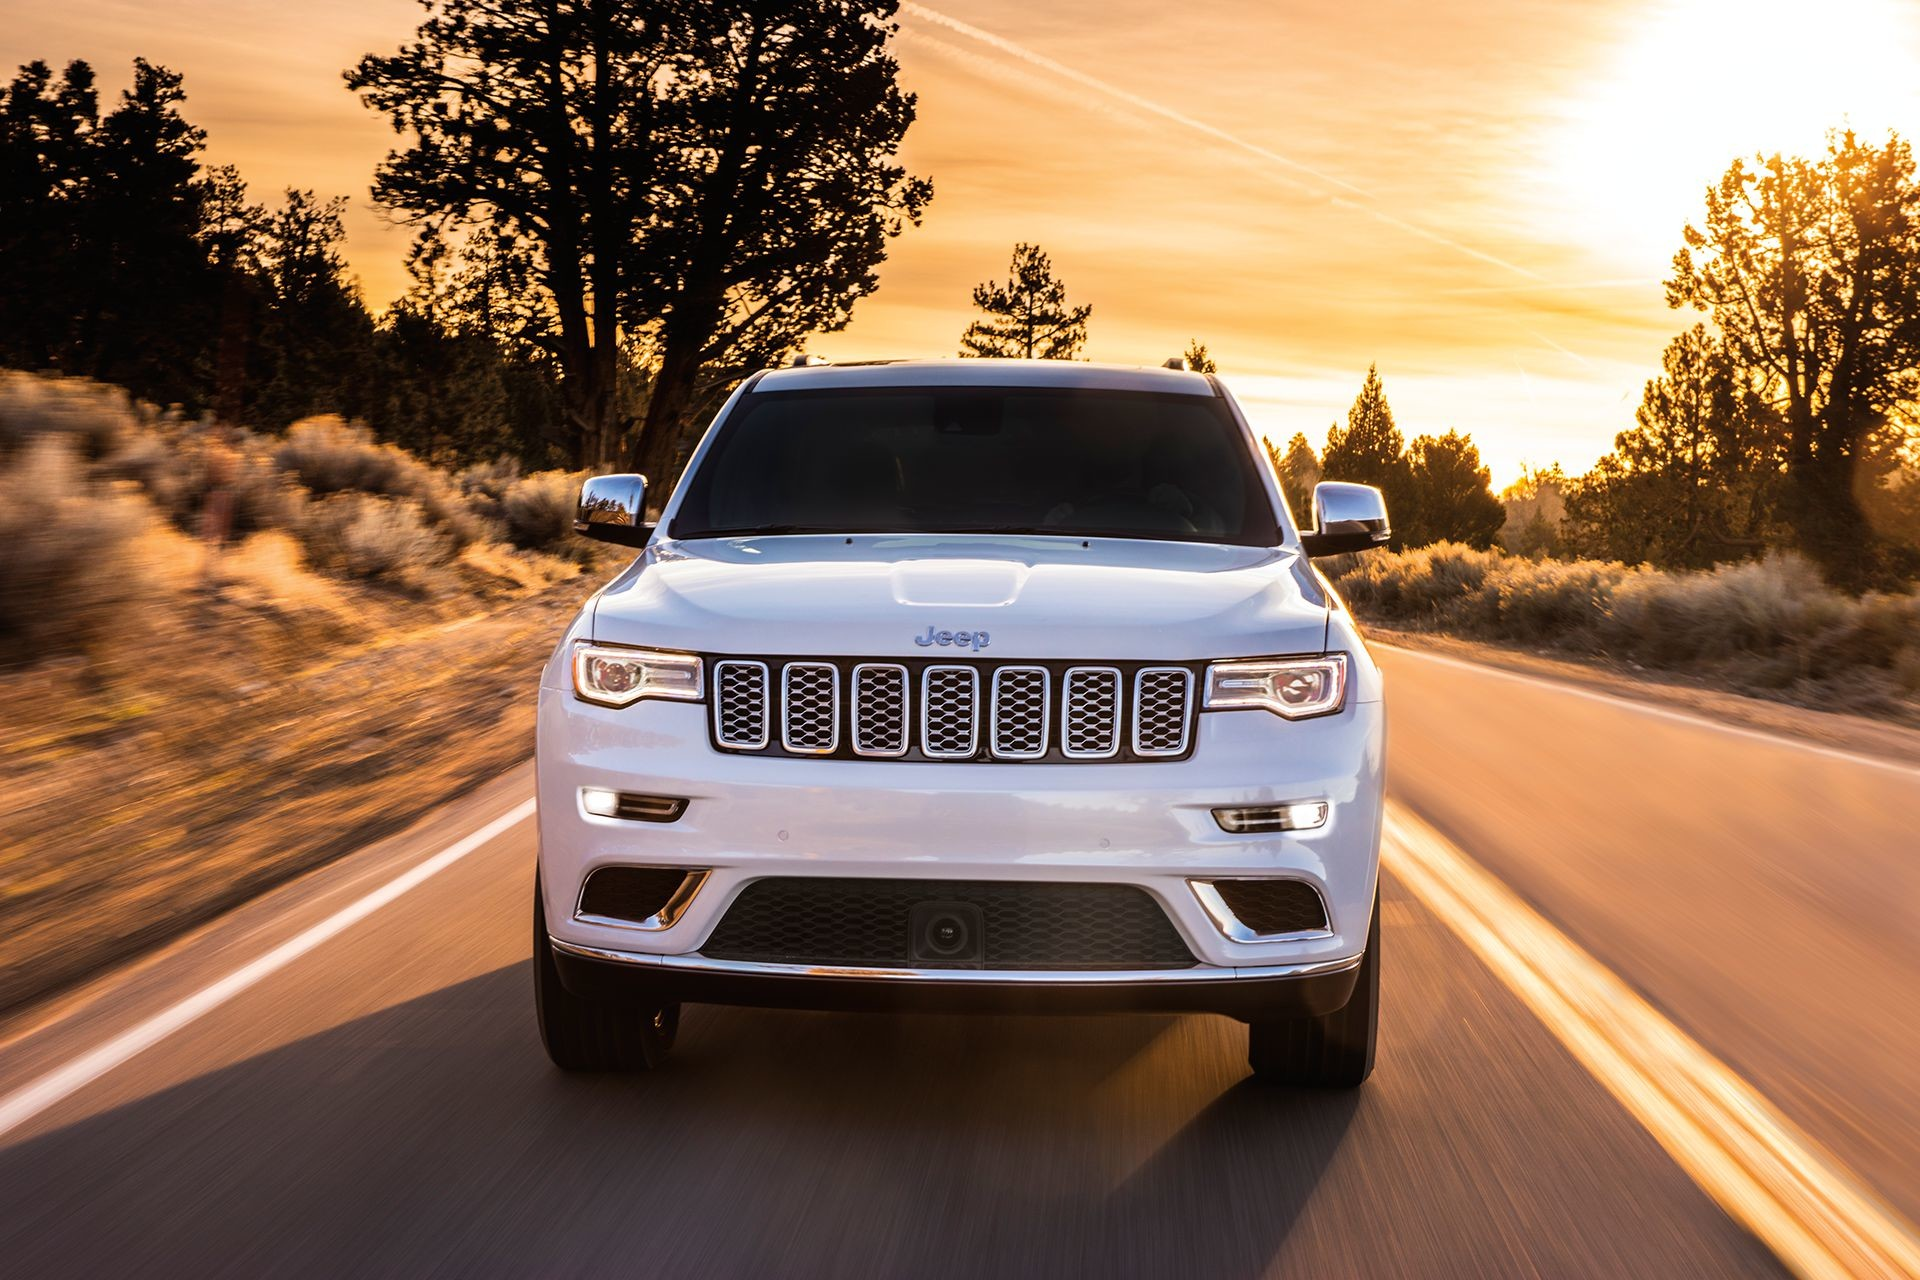 2018 Jeep Grand Cherokee SUV front view, shown in white